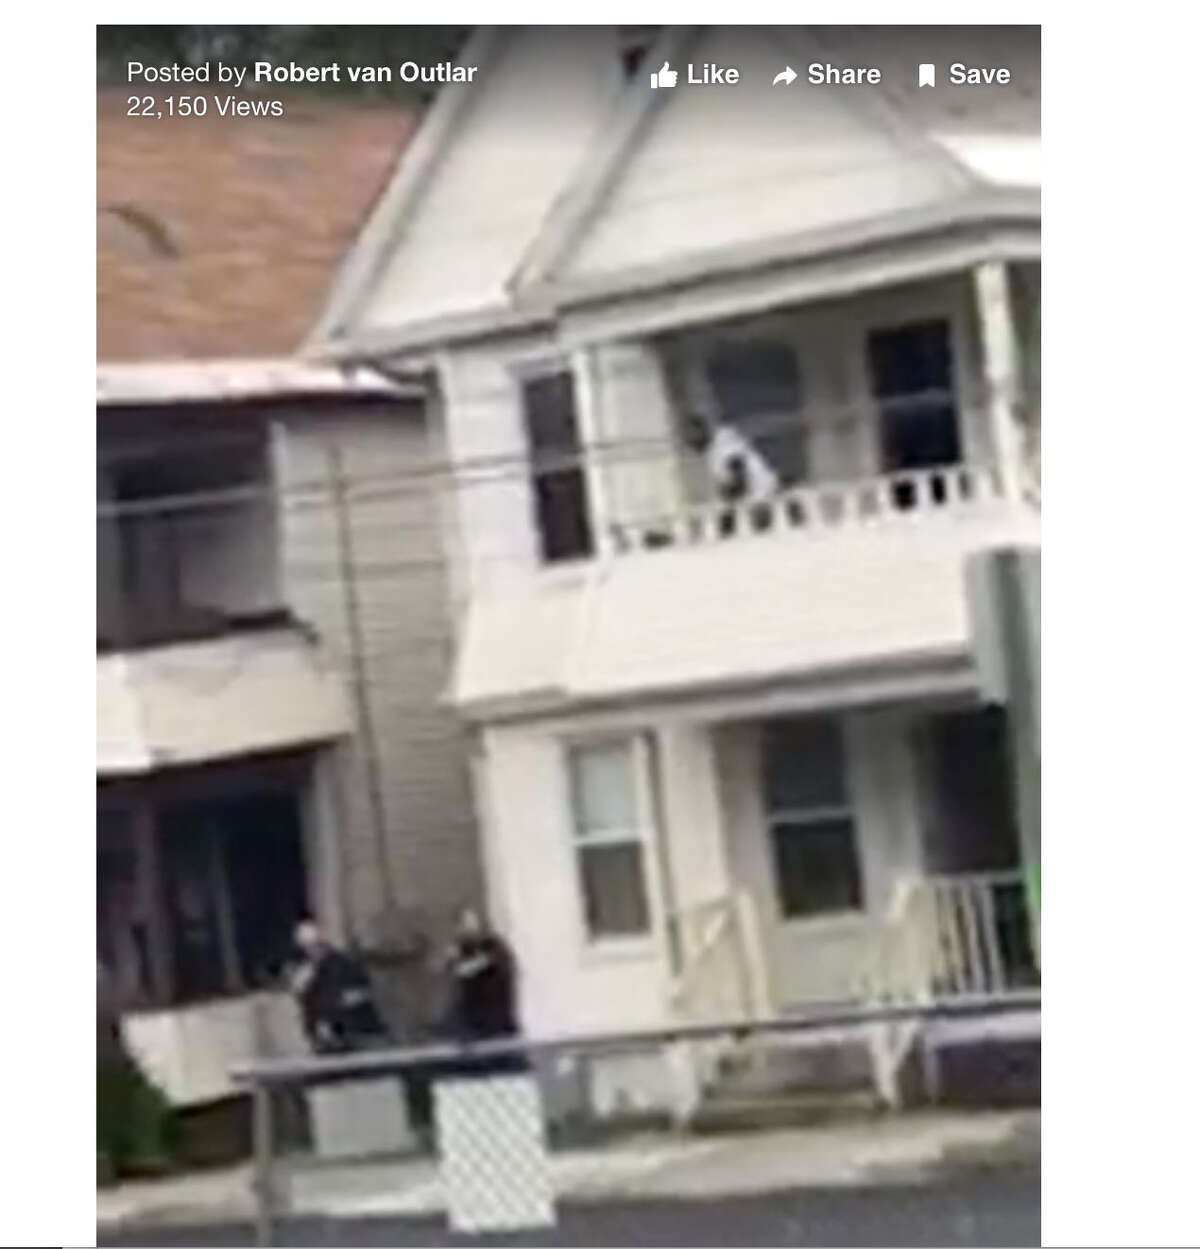 Frame grab from video posted on Facebook which filmed the Mumford Street shooting live on Monday, June 5, 2017, in Schenectady, N.Y.